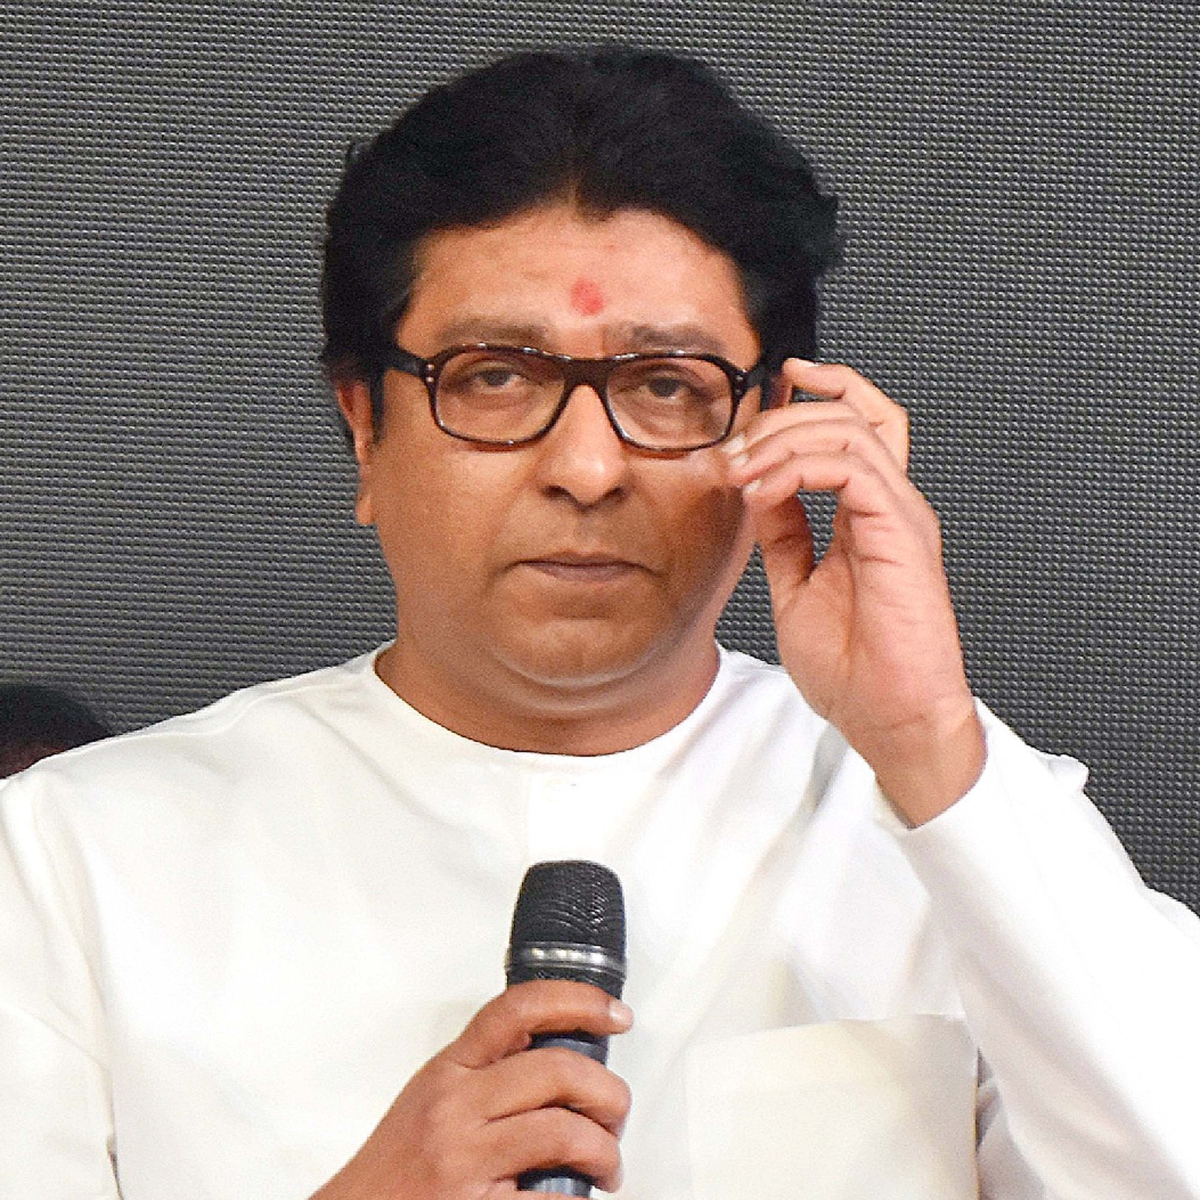 Raj Thackeray indicates shift to vocal Hindutva, targets `infiltrators'